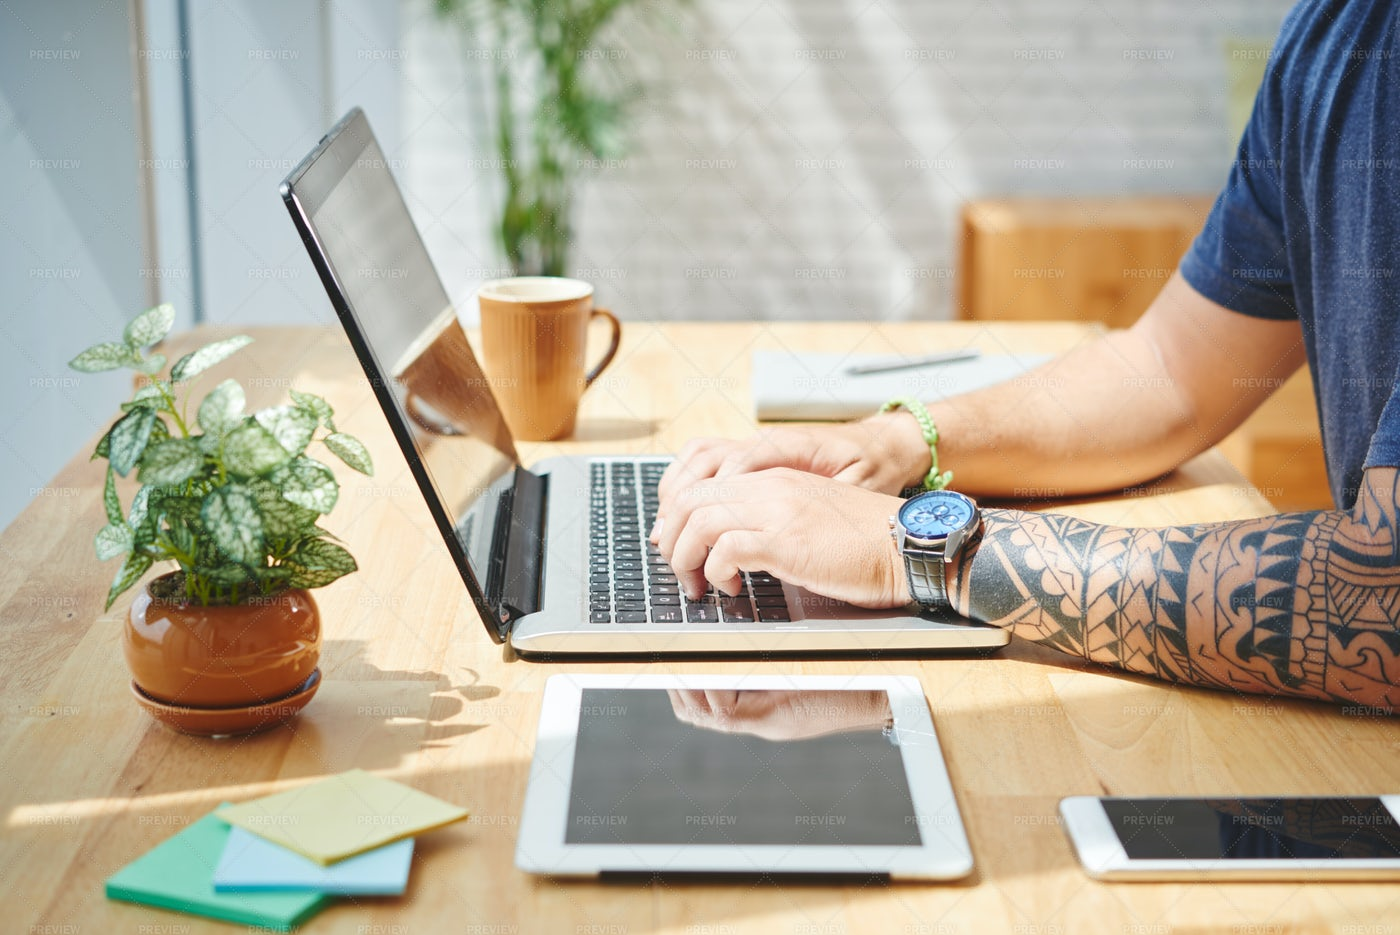 Working Form Home: Stock Photos